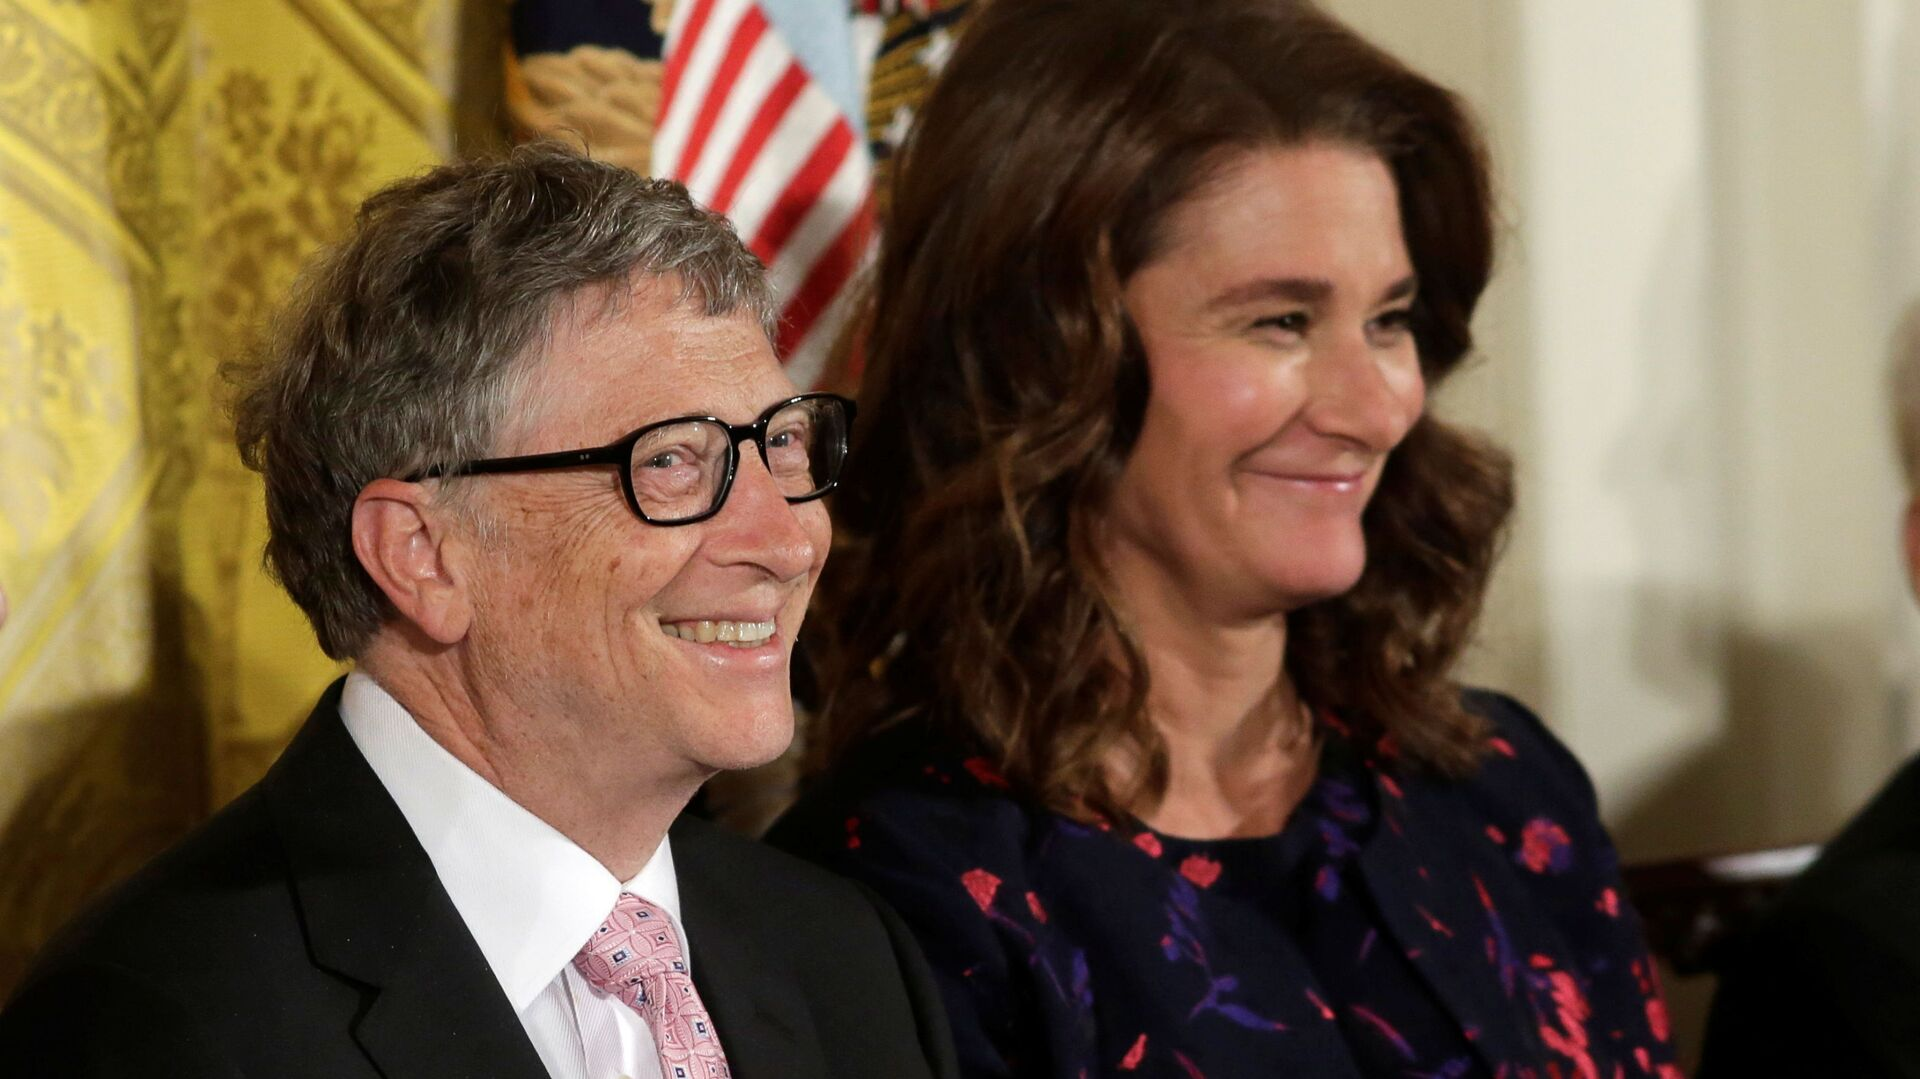 Bill and Melinda Gates attend the Presidential Medals of Freedom ceremonies  in the East Room of the White House in Washington, U.S - Sputnik International, 1920, 11.09.2021